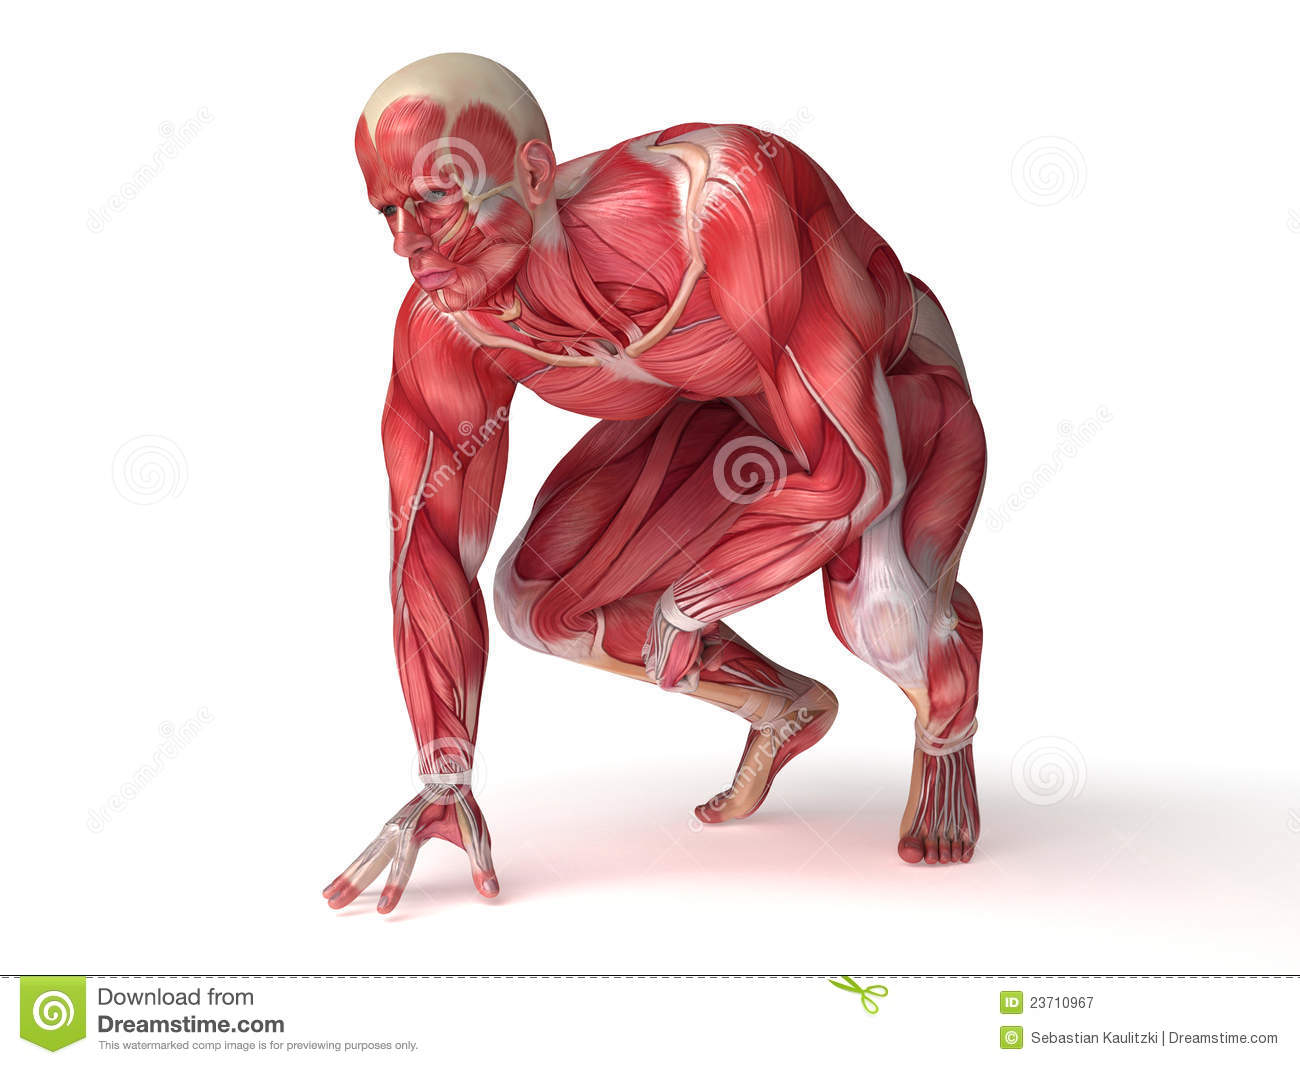 3d rendered scientific illustration of the males muscles.